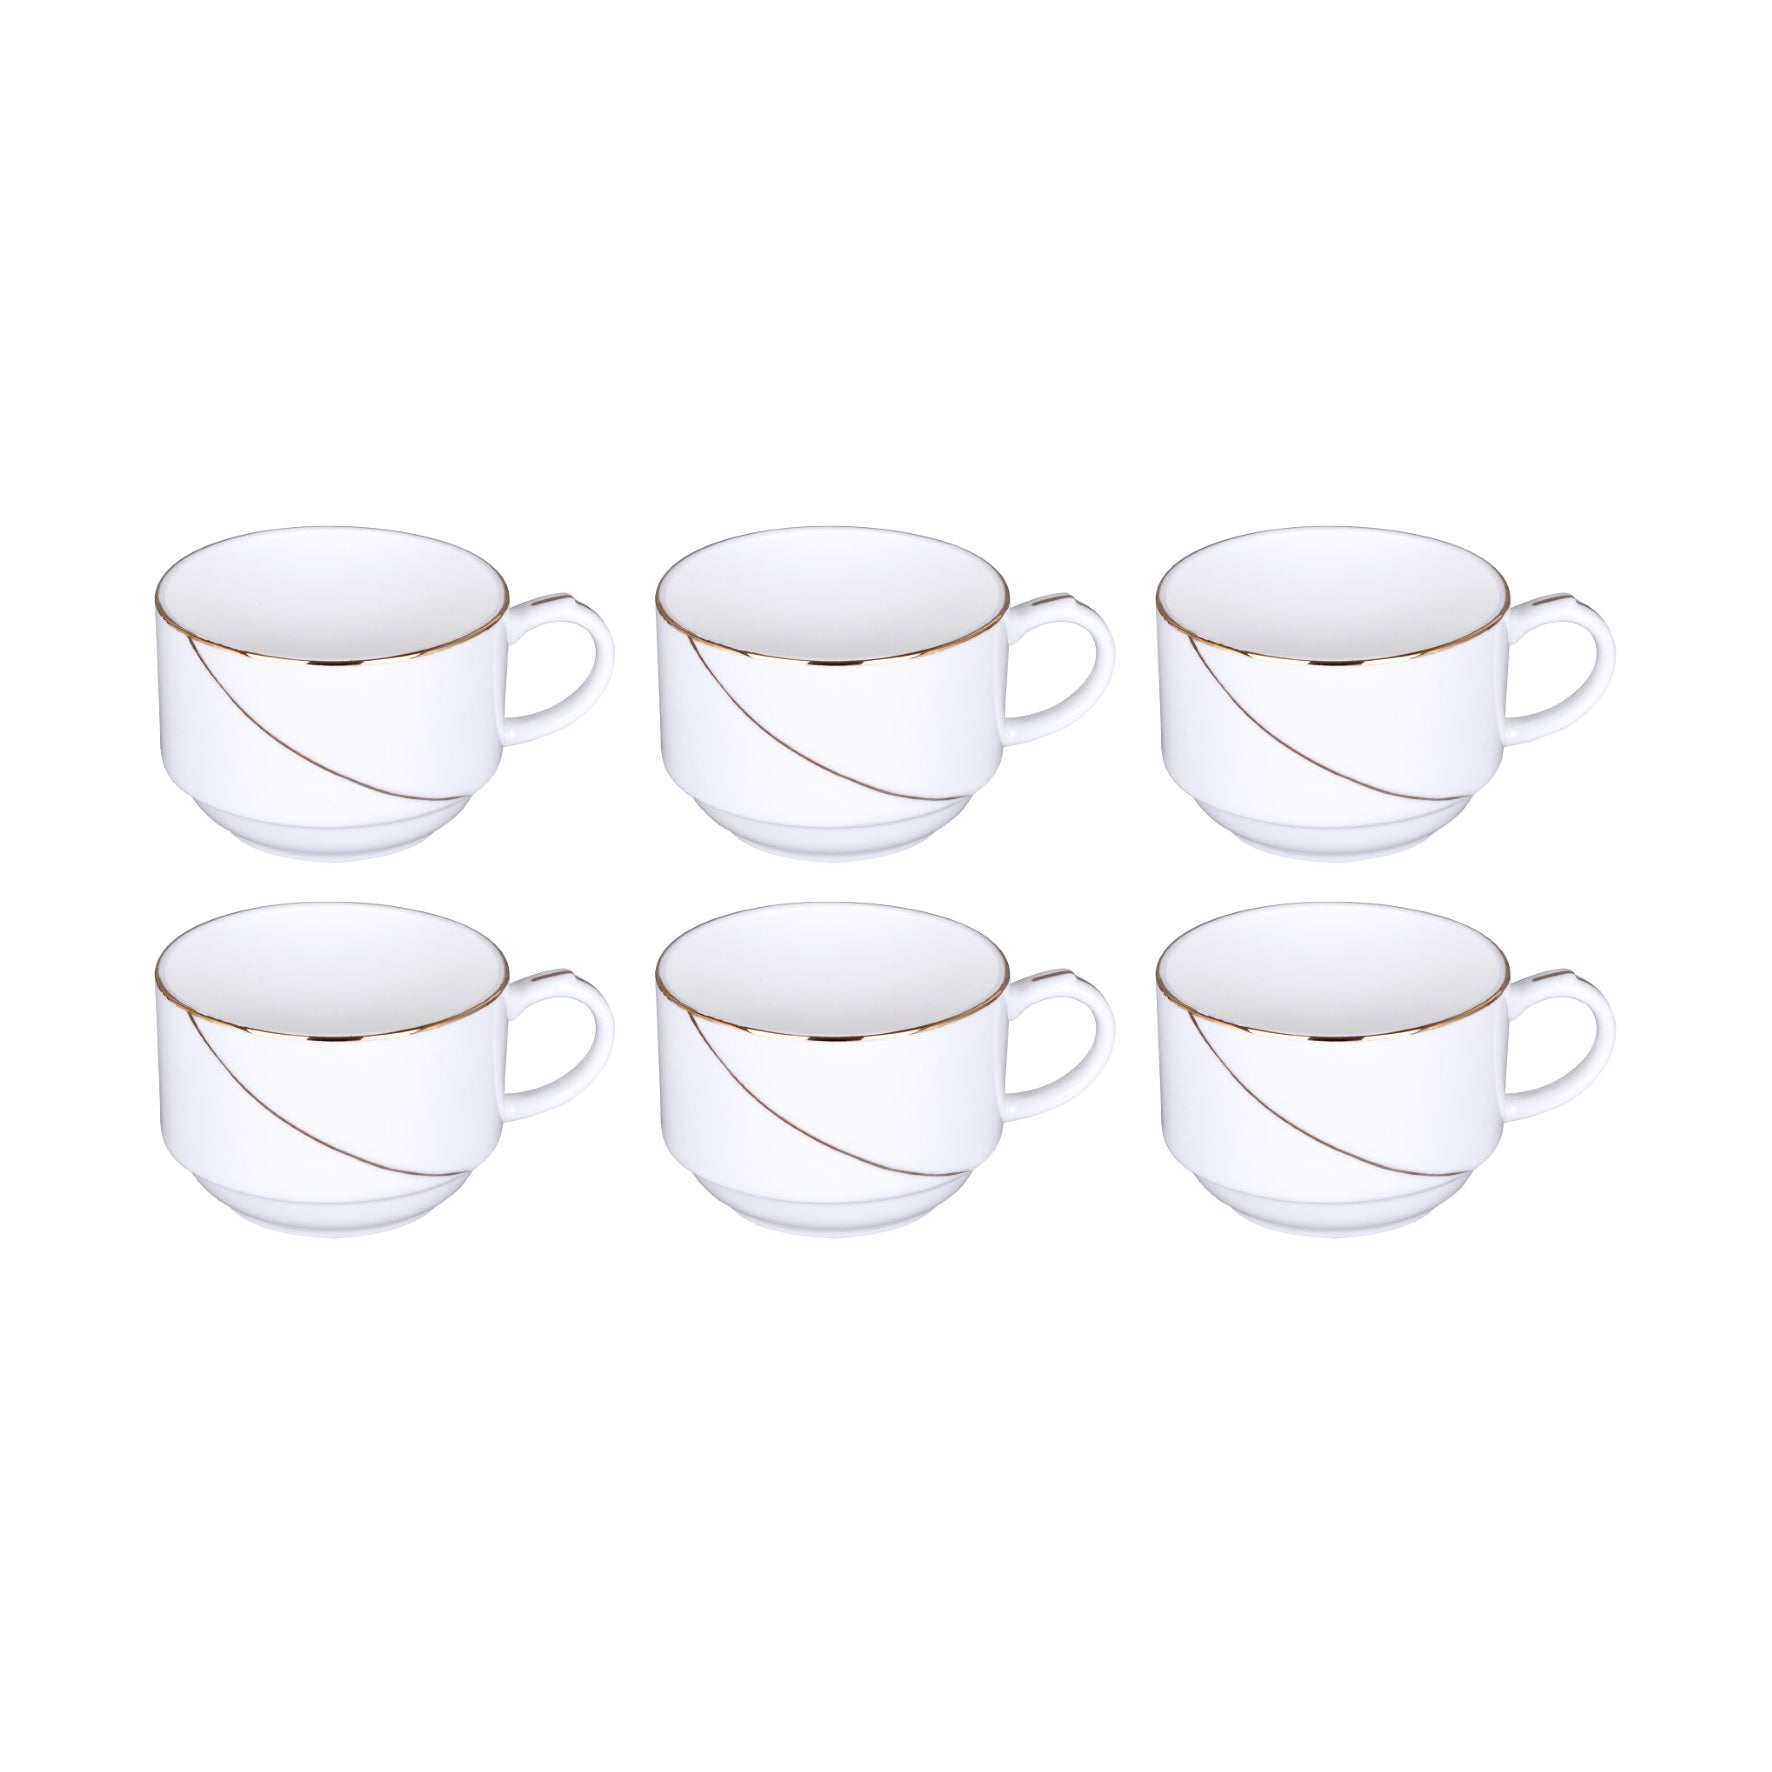 6Pcs Cups(Golden Line)New Bone China1x12